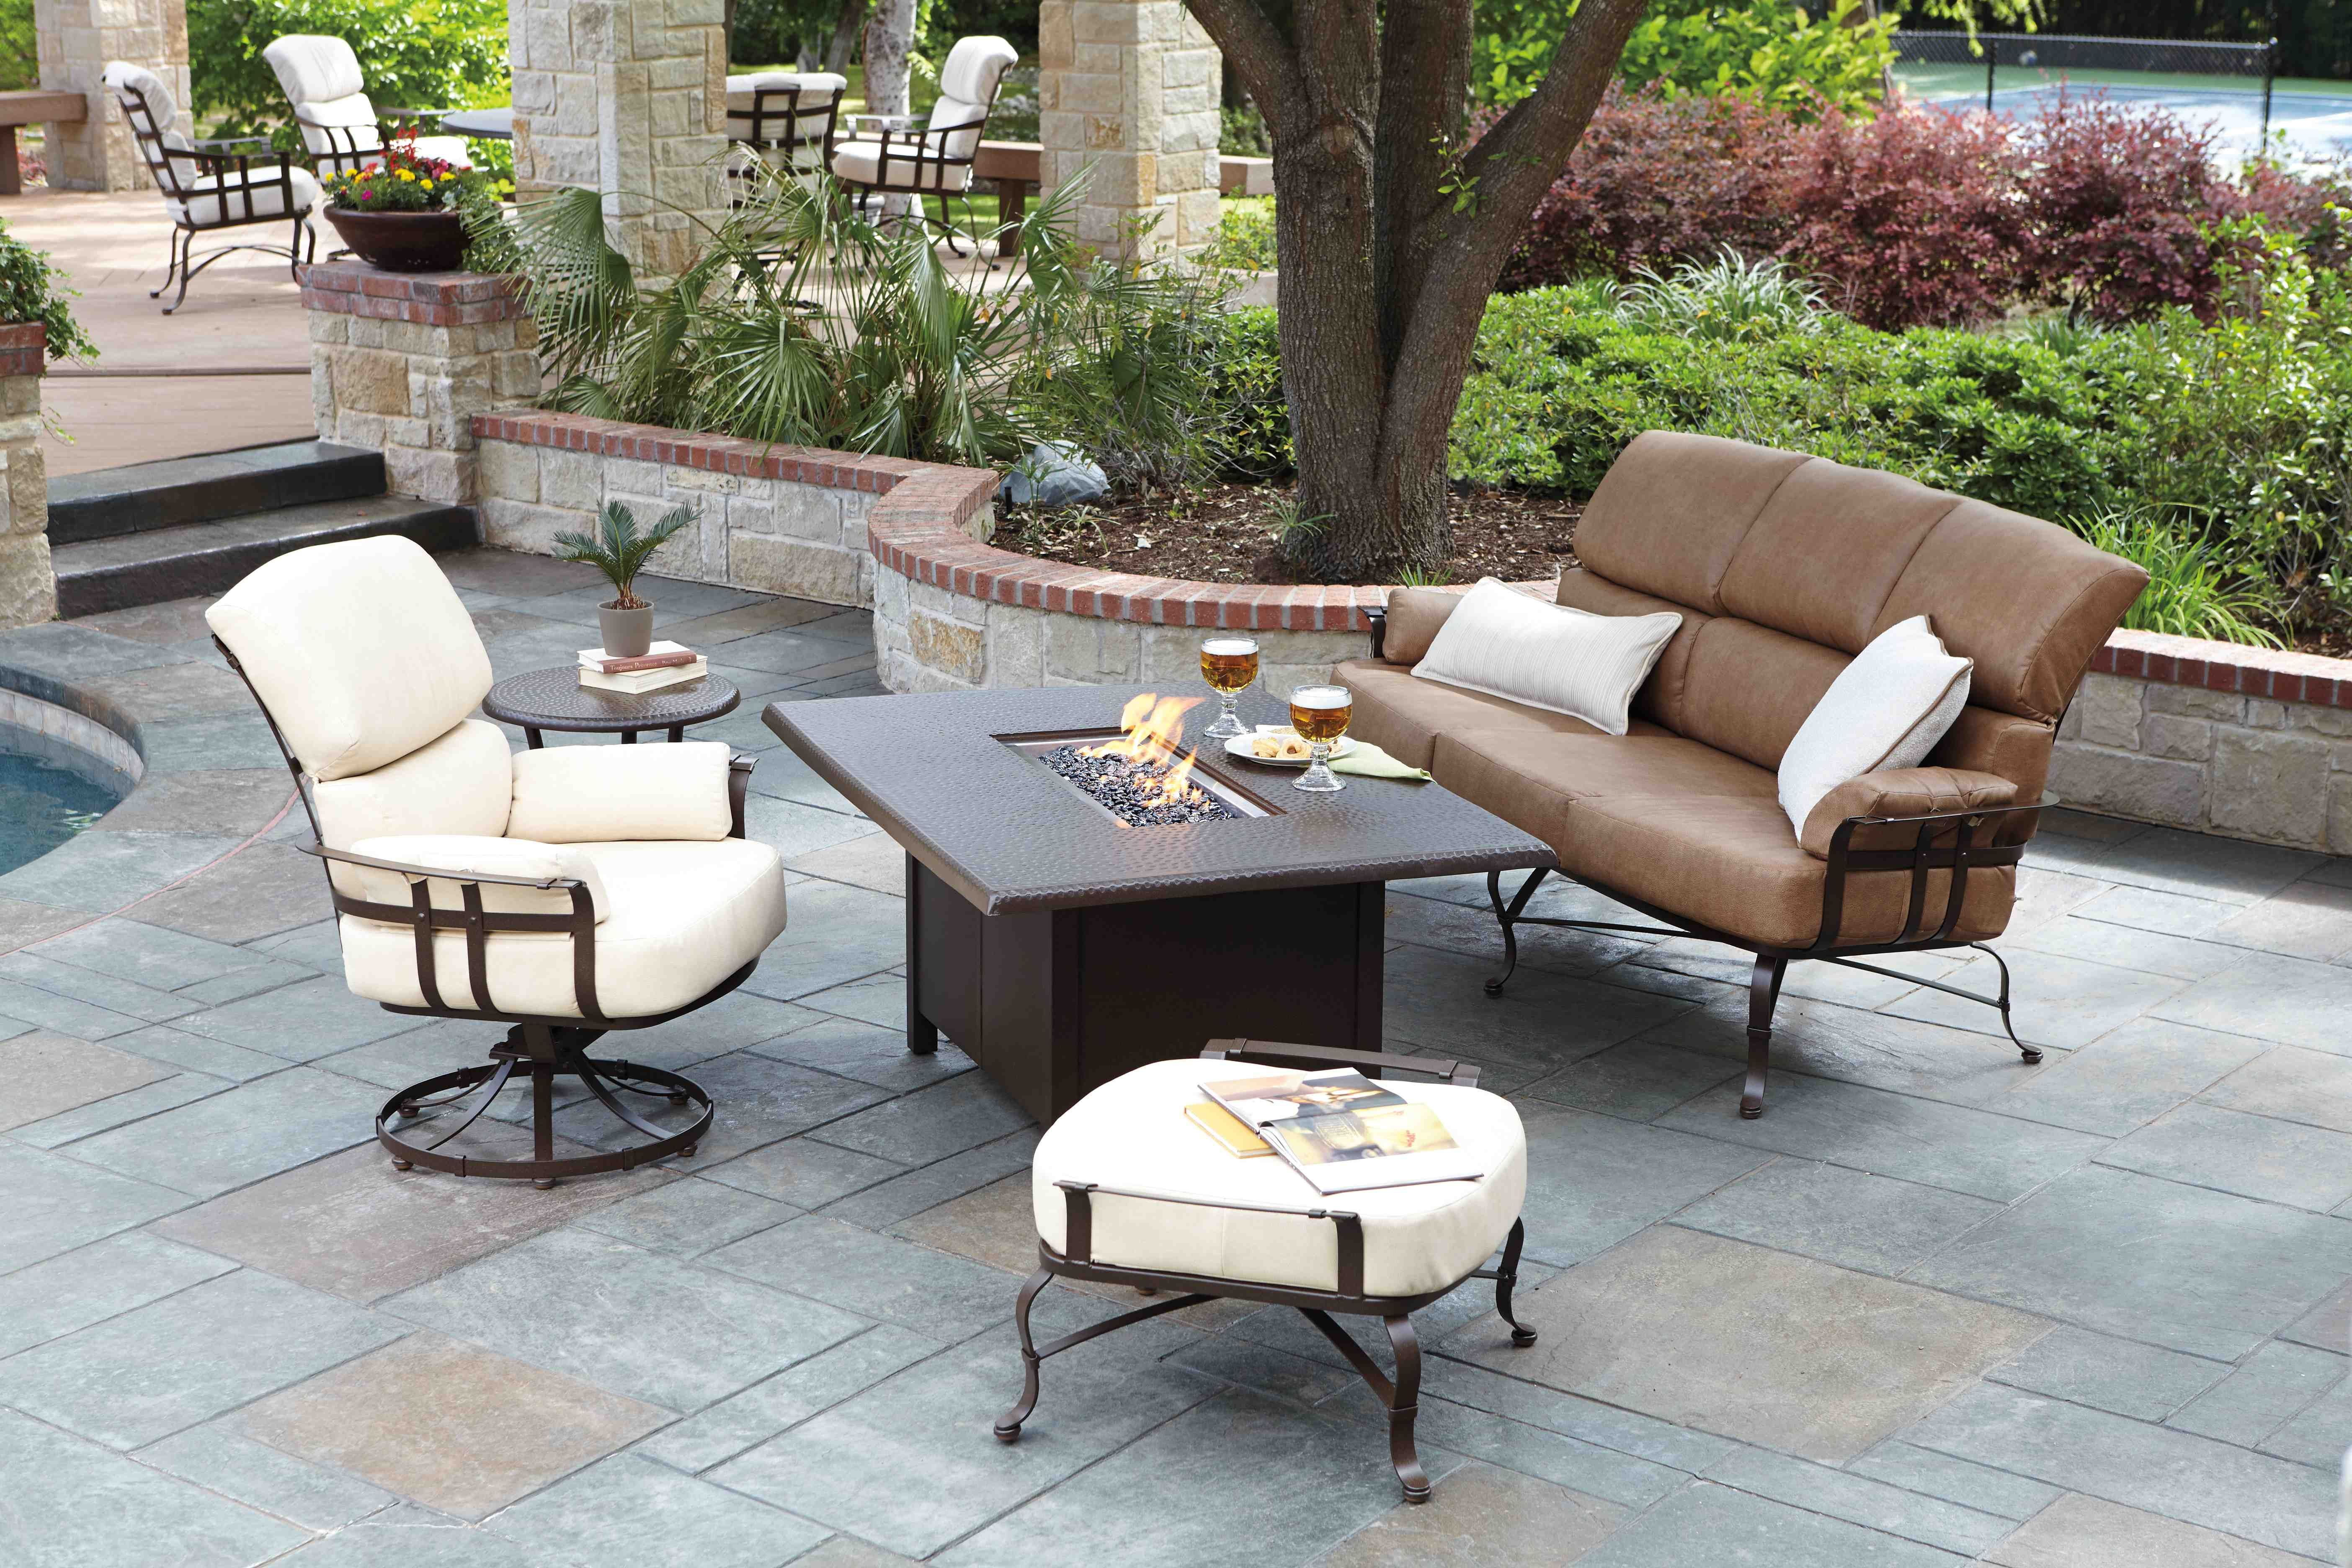 Atlas Wrought Iron Seating With Rectangular Cocktail Table With Integrated Fire Outdoor Furniture Sofa Patio Furniture Collection Wrought Iron Patio Furniture